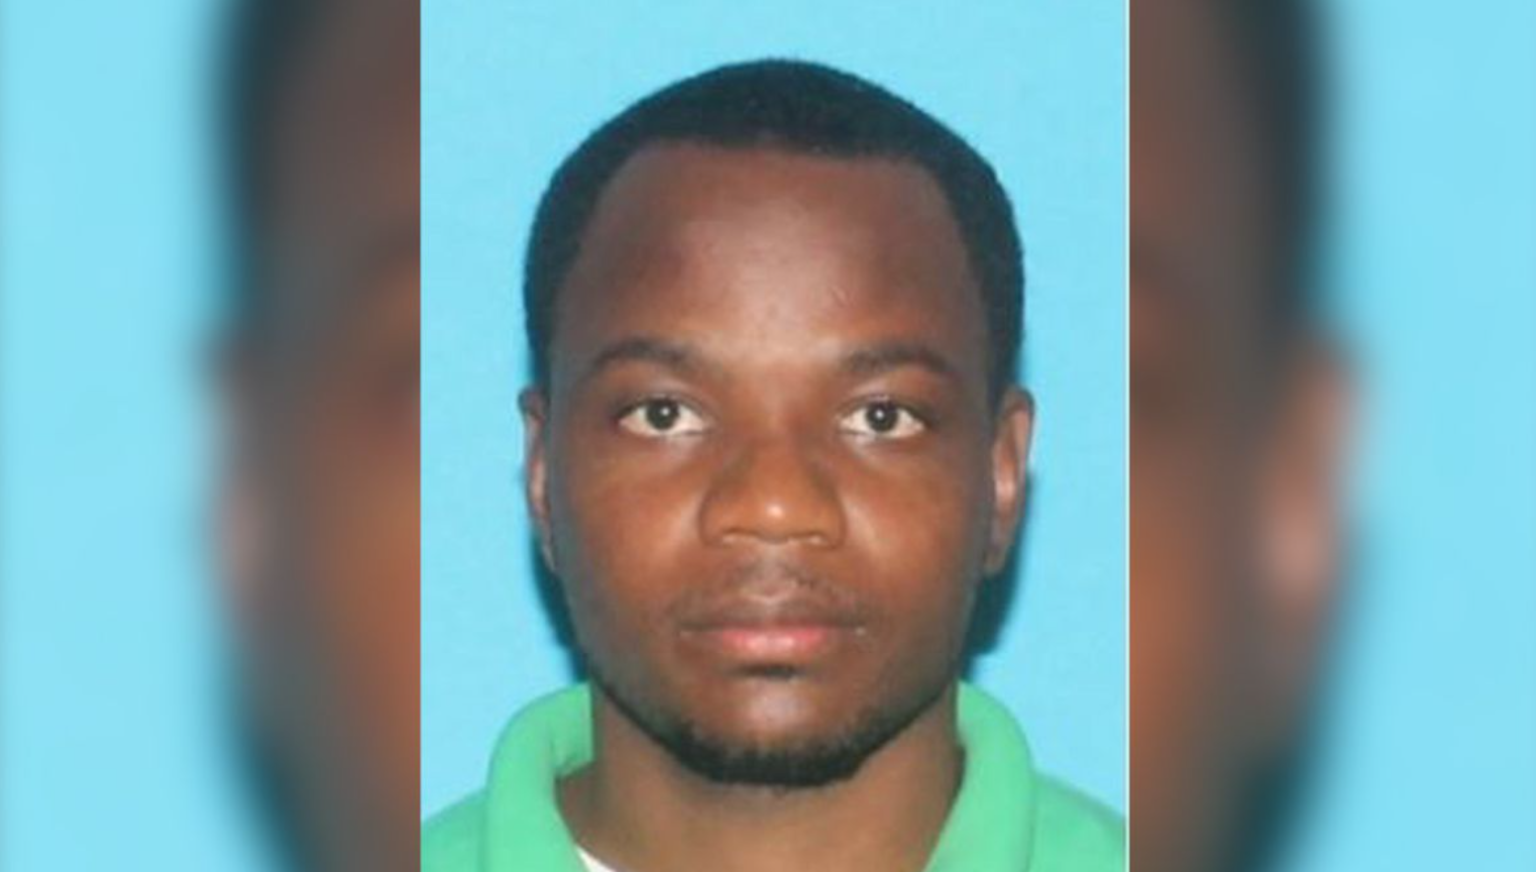 The suspect, 29-year-old Latarius Howard, is the one responsible, per chief. (Helena-West Helena Police)